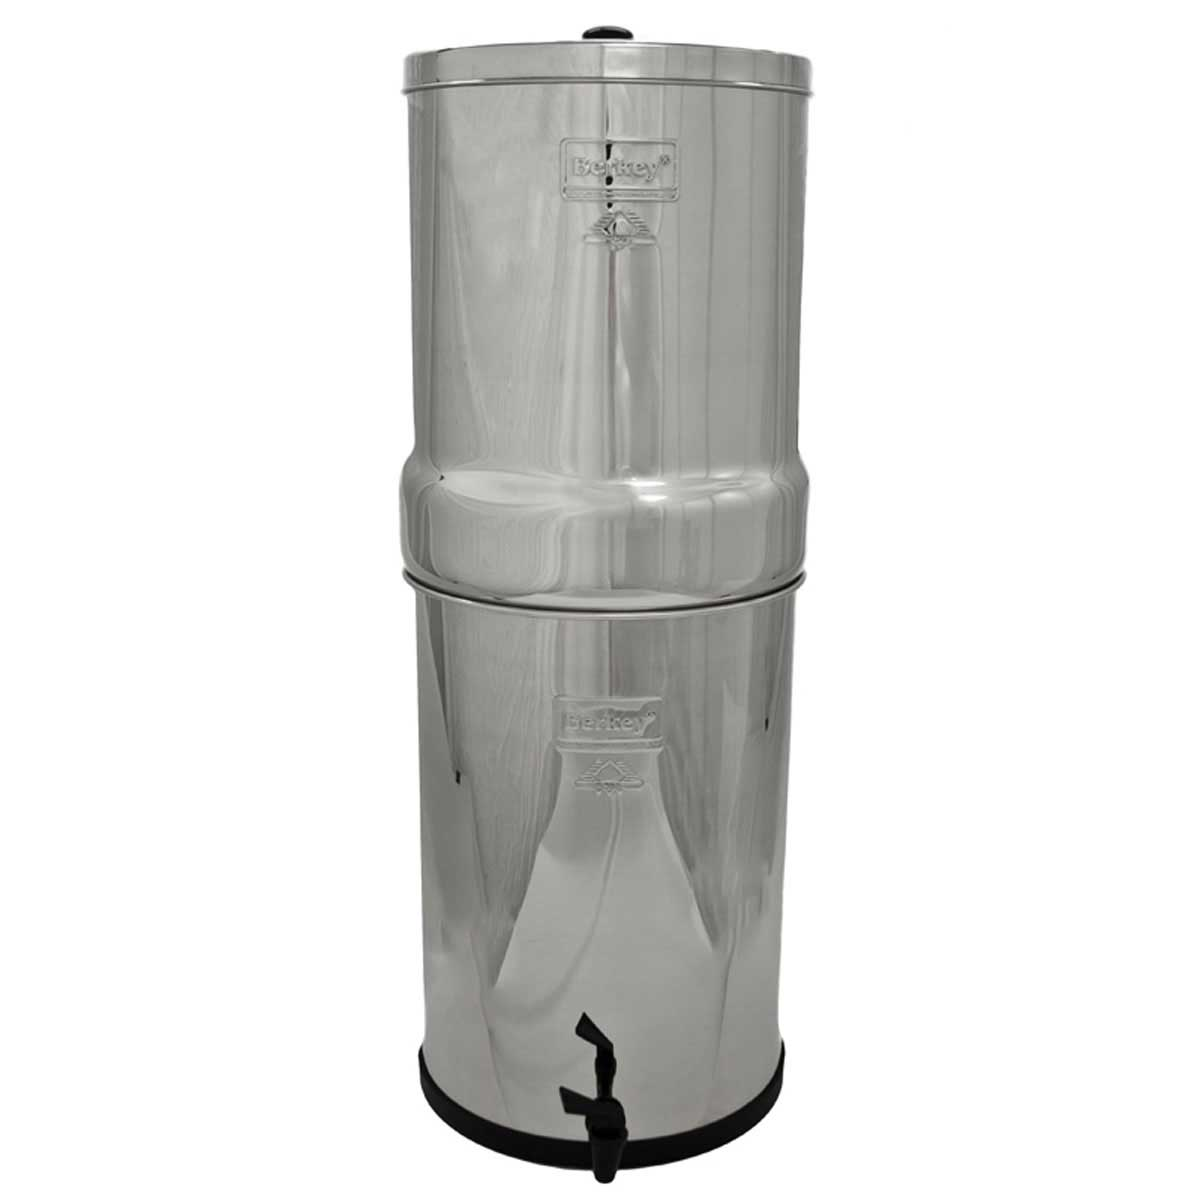 Crown Berkey 6 Gal Water System (4 Purifiers) by Berkey